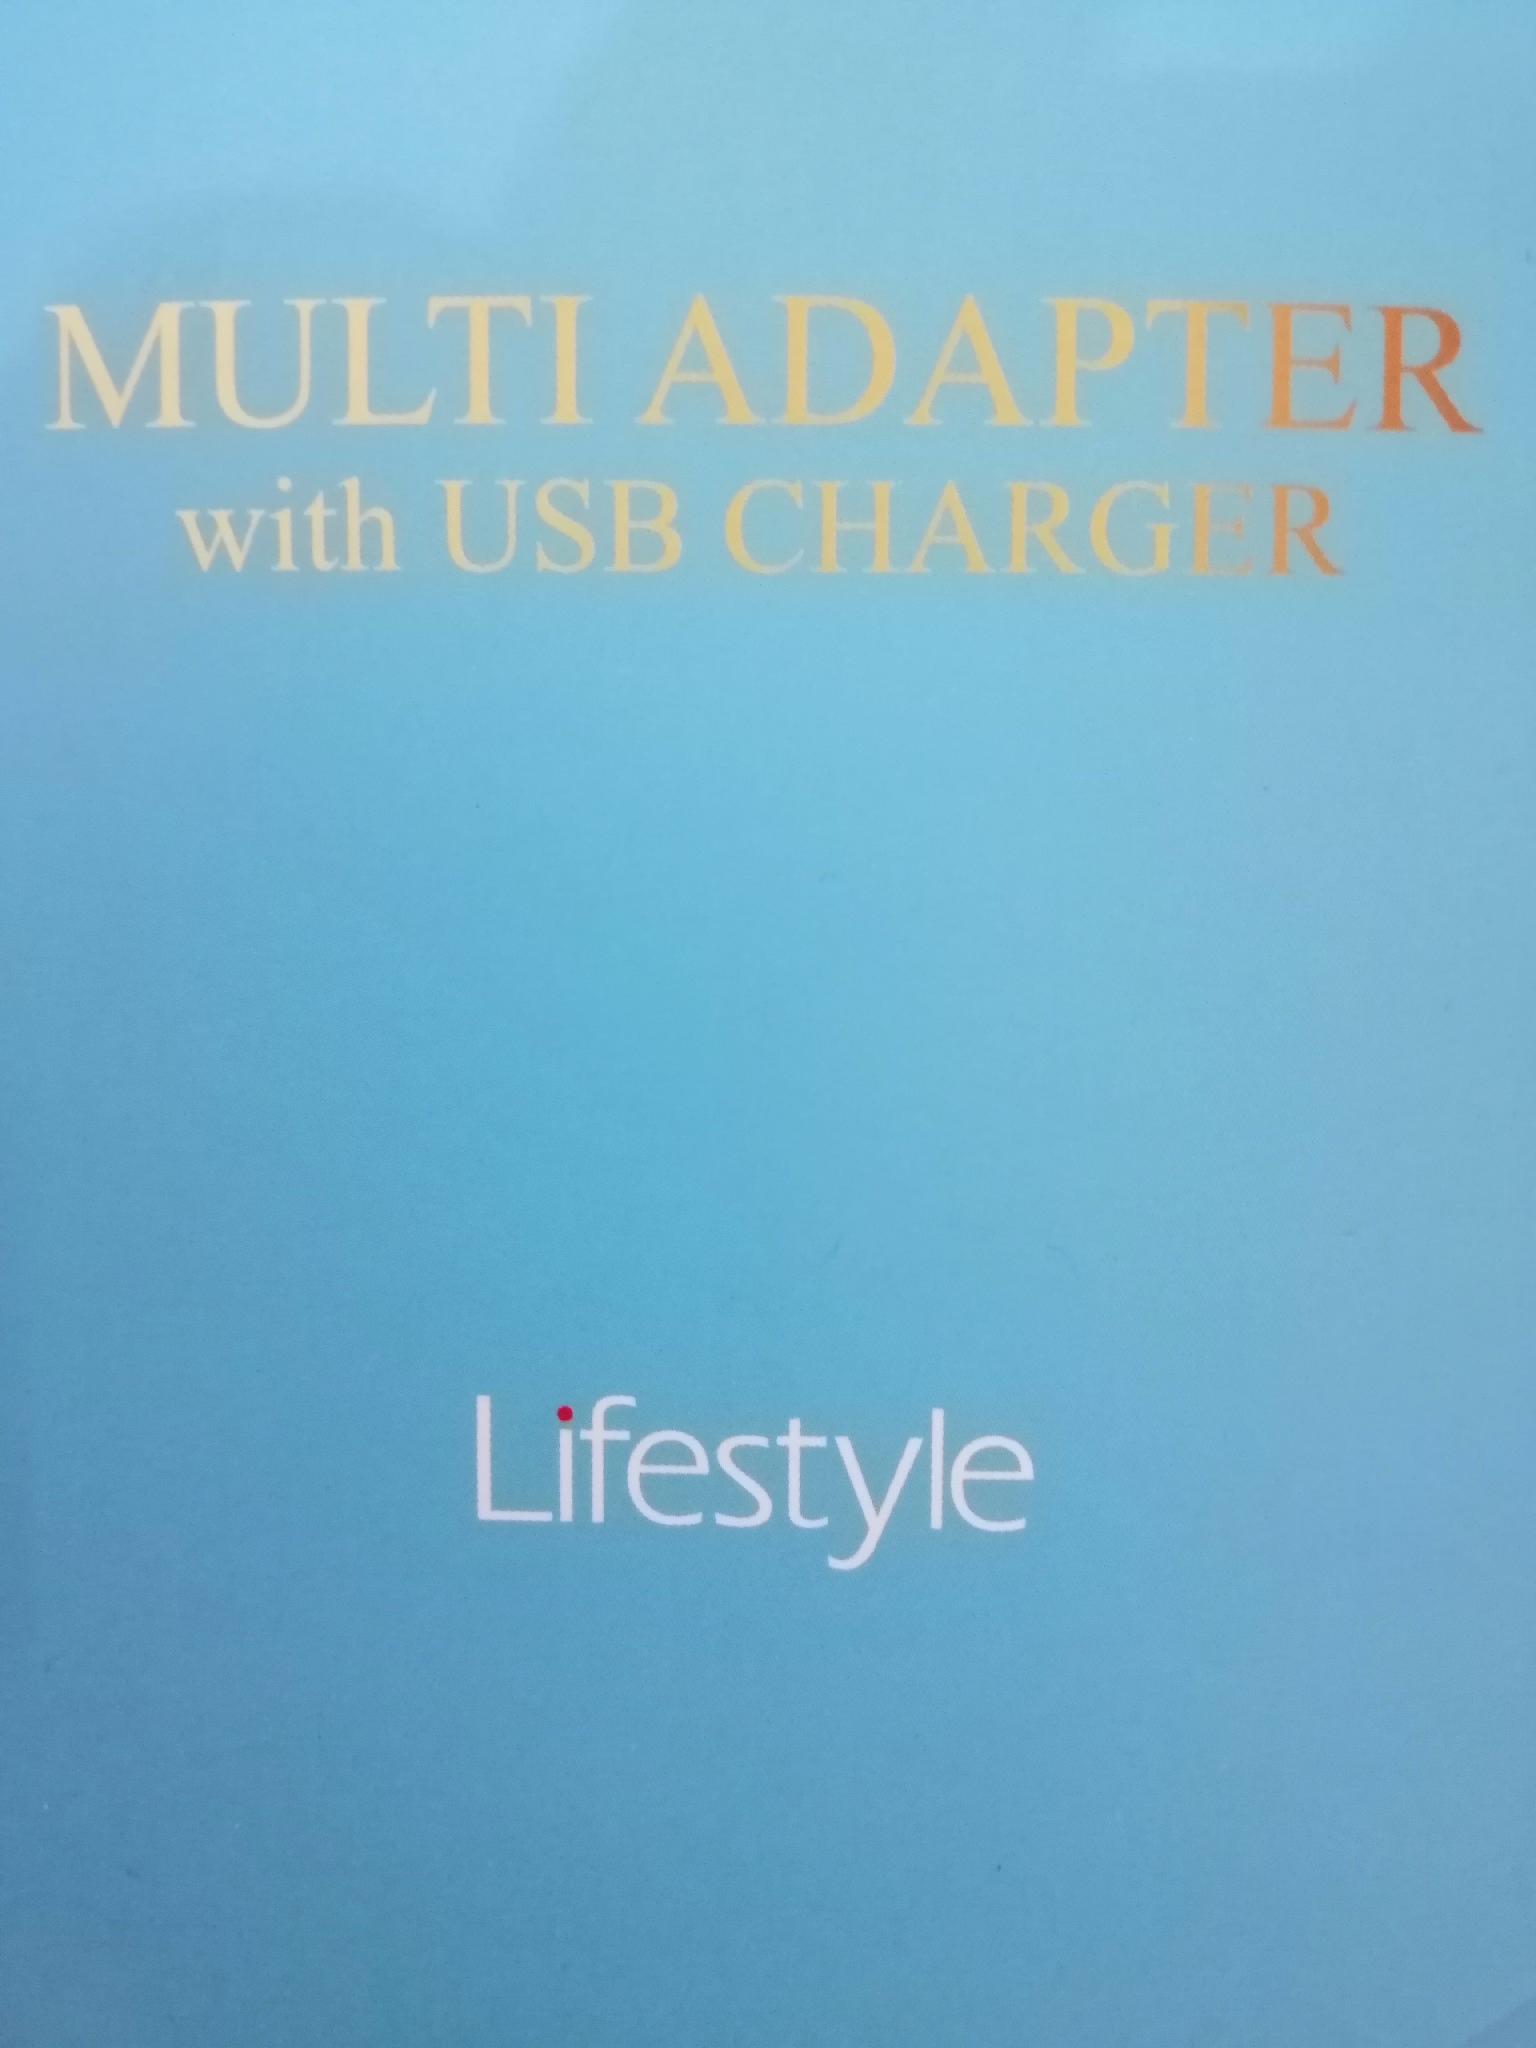 NEW MULTI ADAPTER WITH USB CHARGER